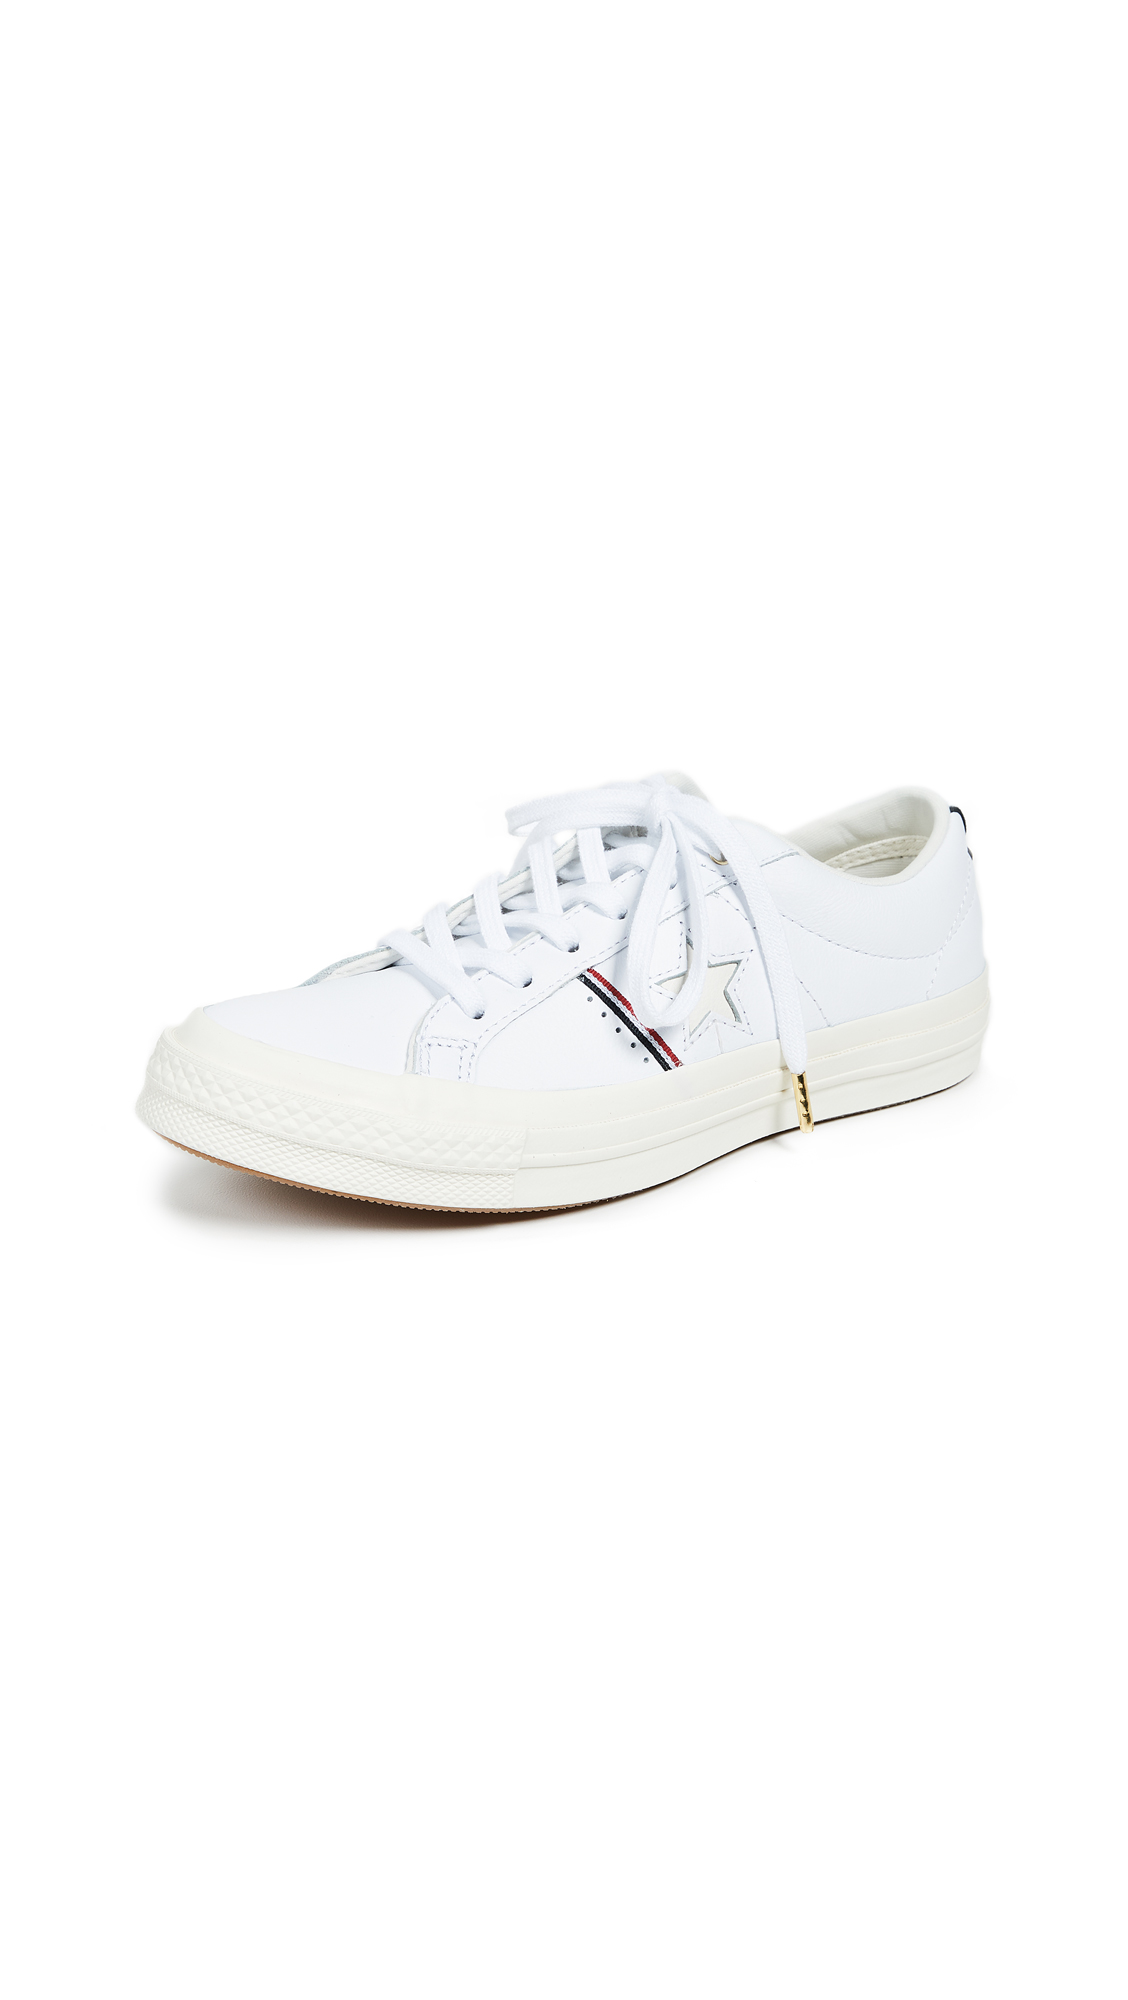 Converse One Star OX Sneakers - White/Red/Egret